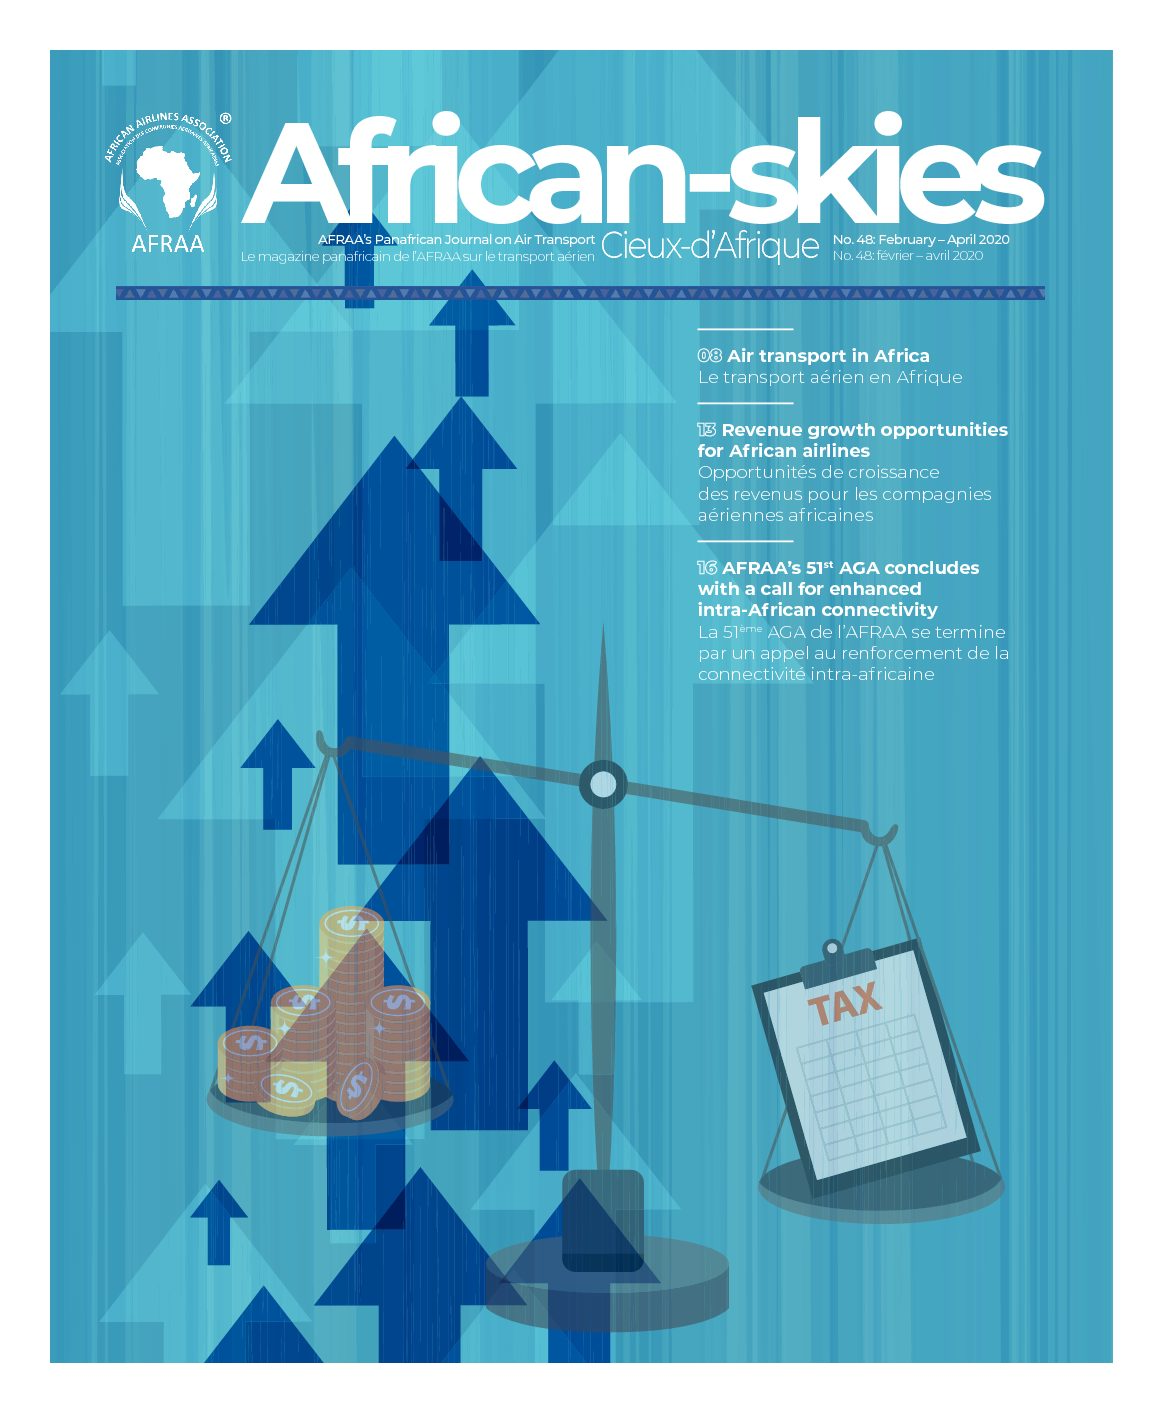 African Skies Issue no. 48